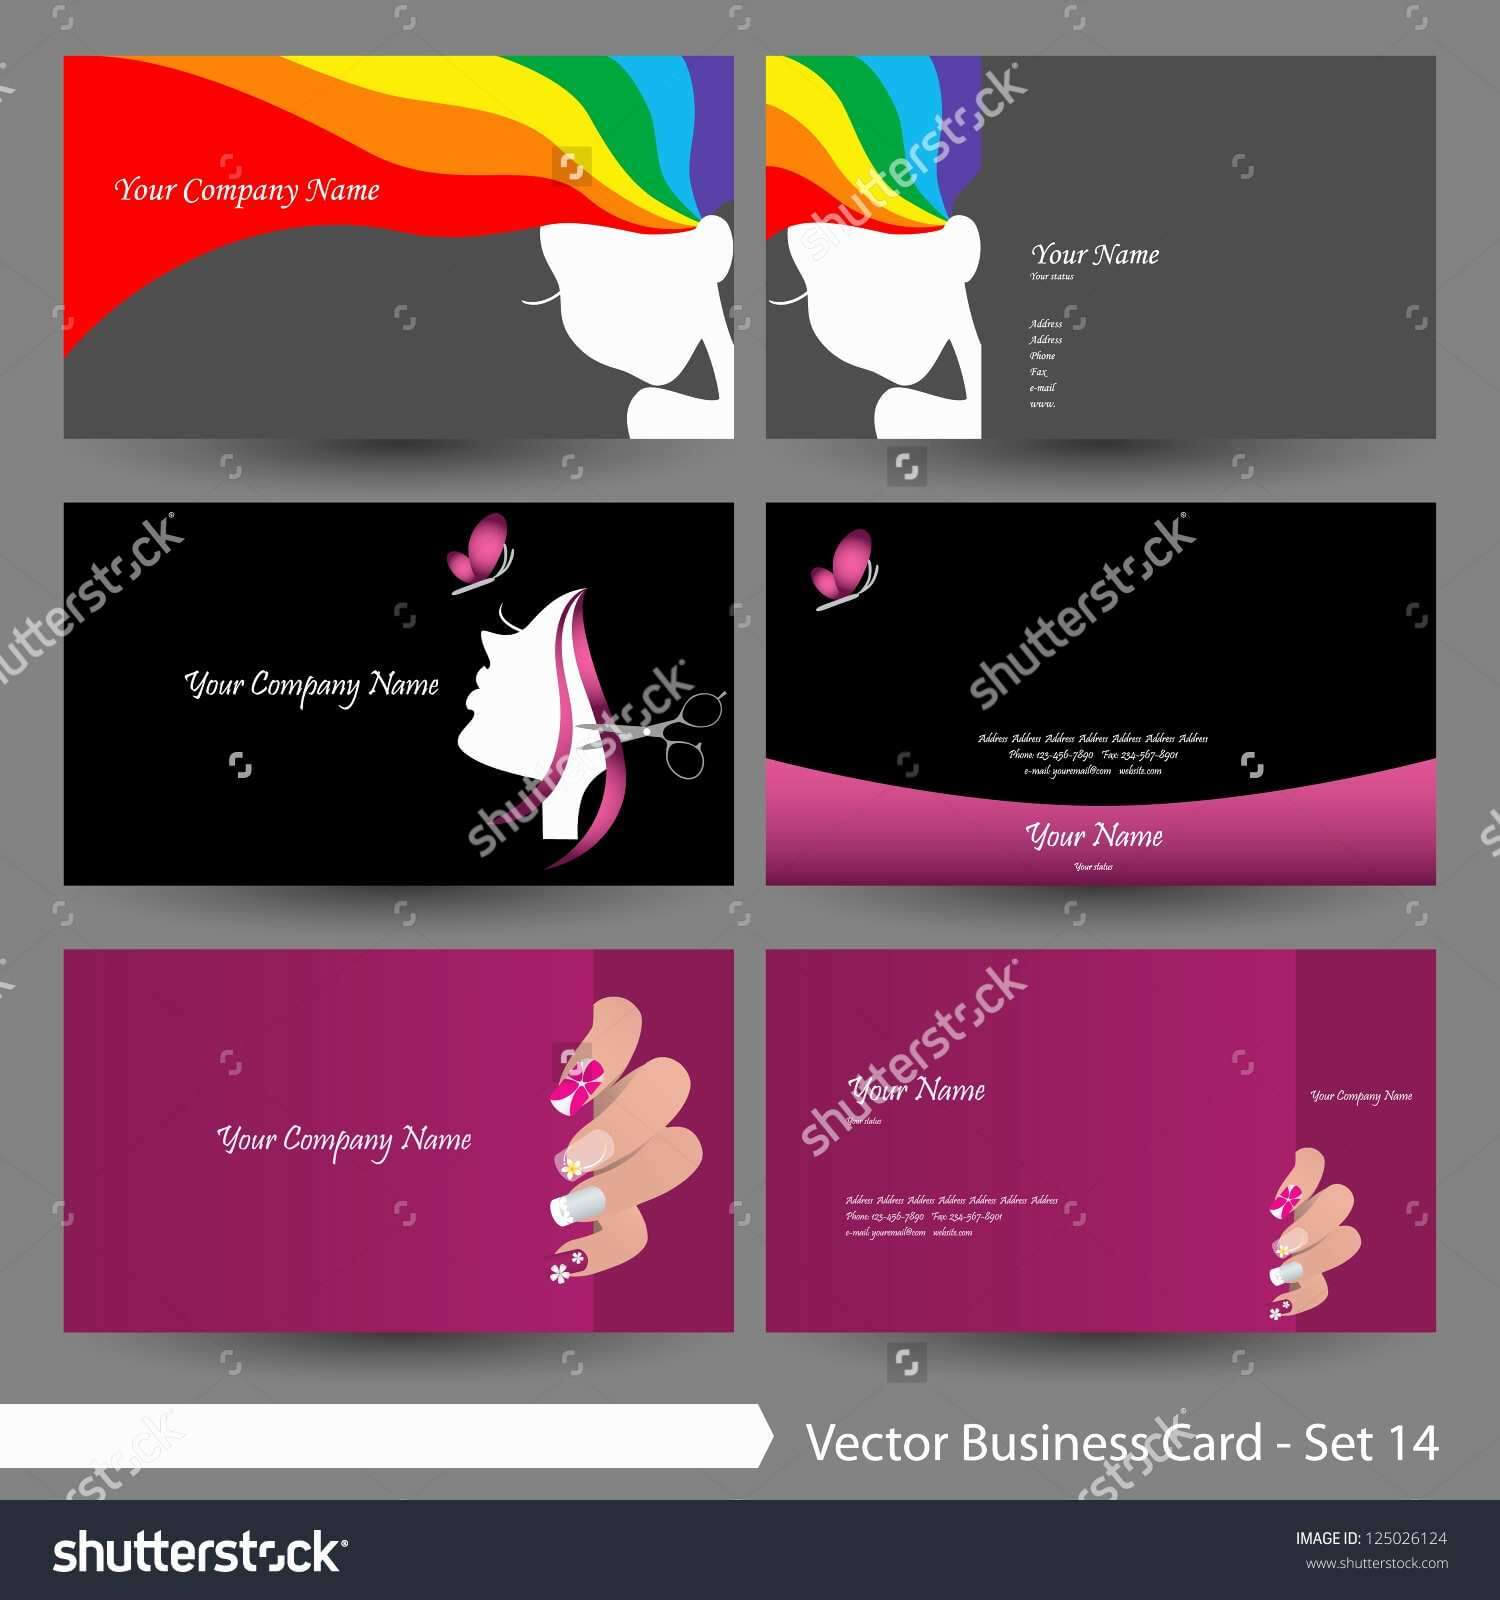 Hair Stylist Business Cards Templates Free - Raovathanoi with Hairdresser Business Card Templates Free